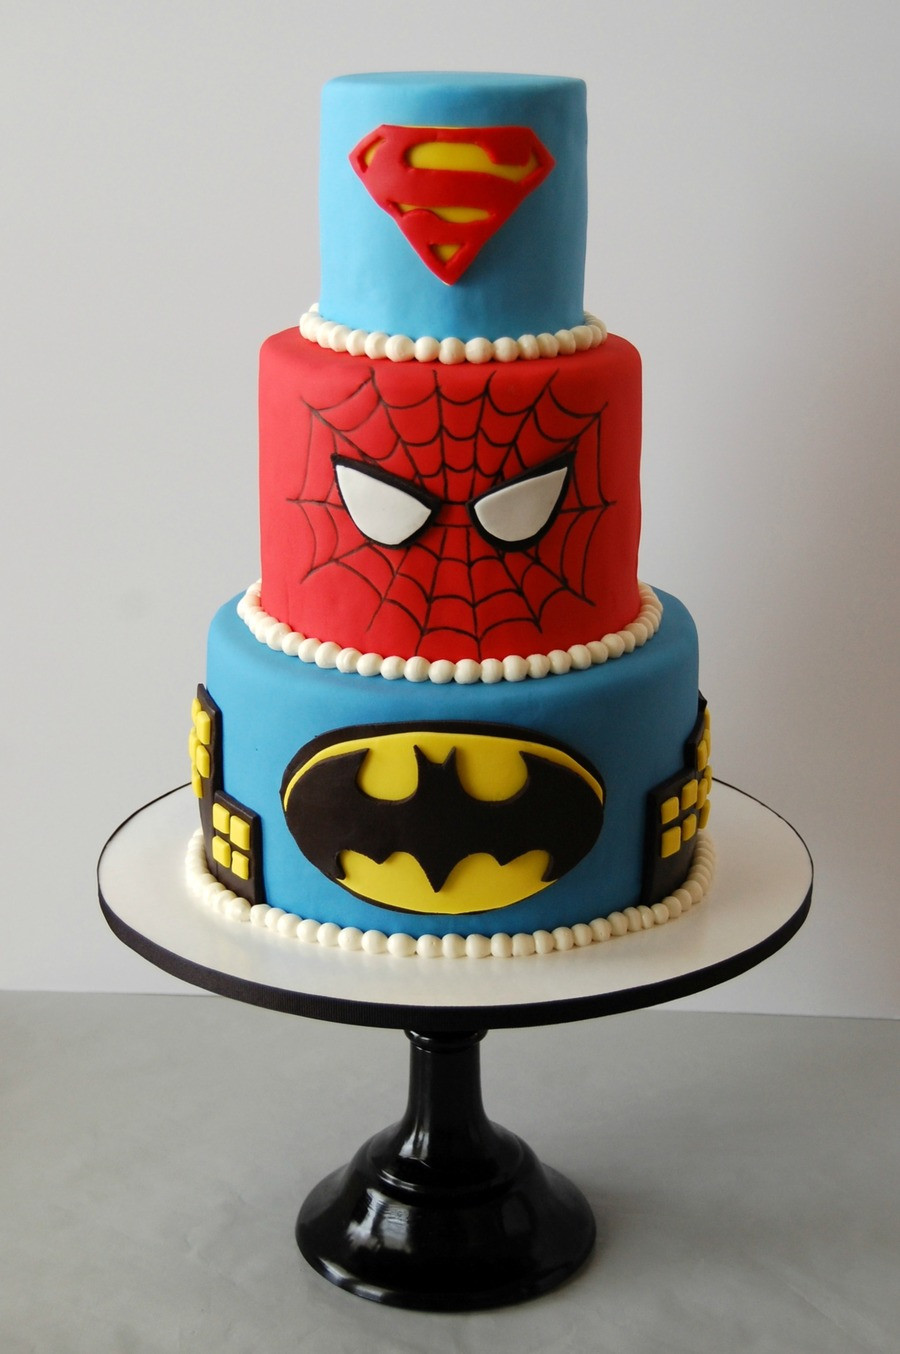 Superhero Birthday Cake  Superhero Birthday Cake CakeCentral